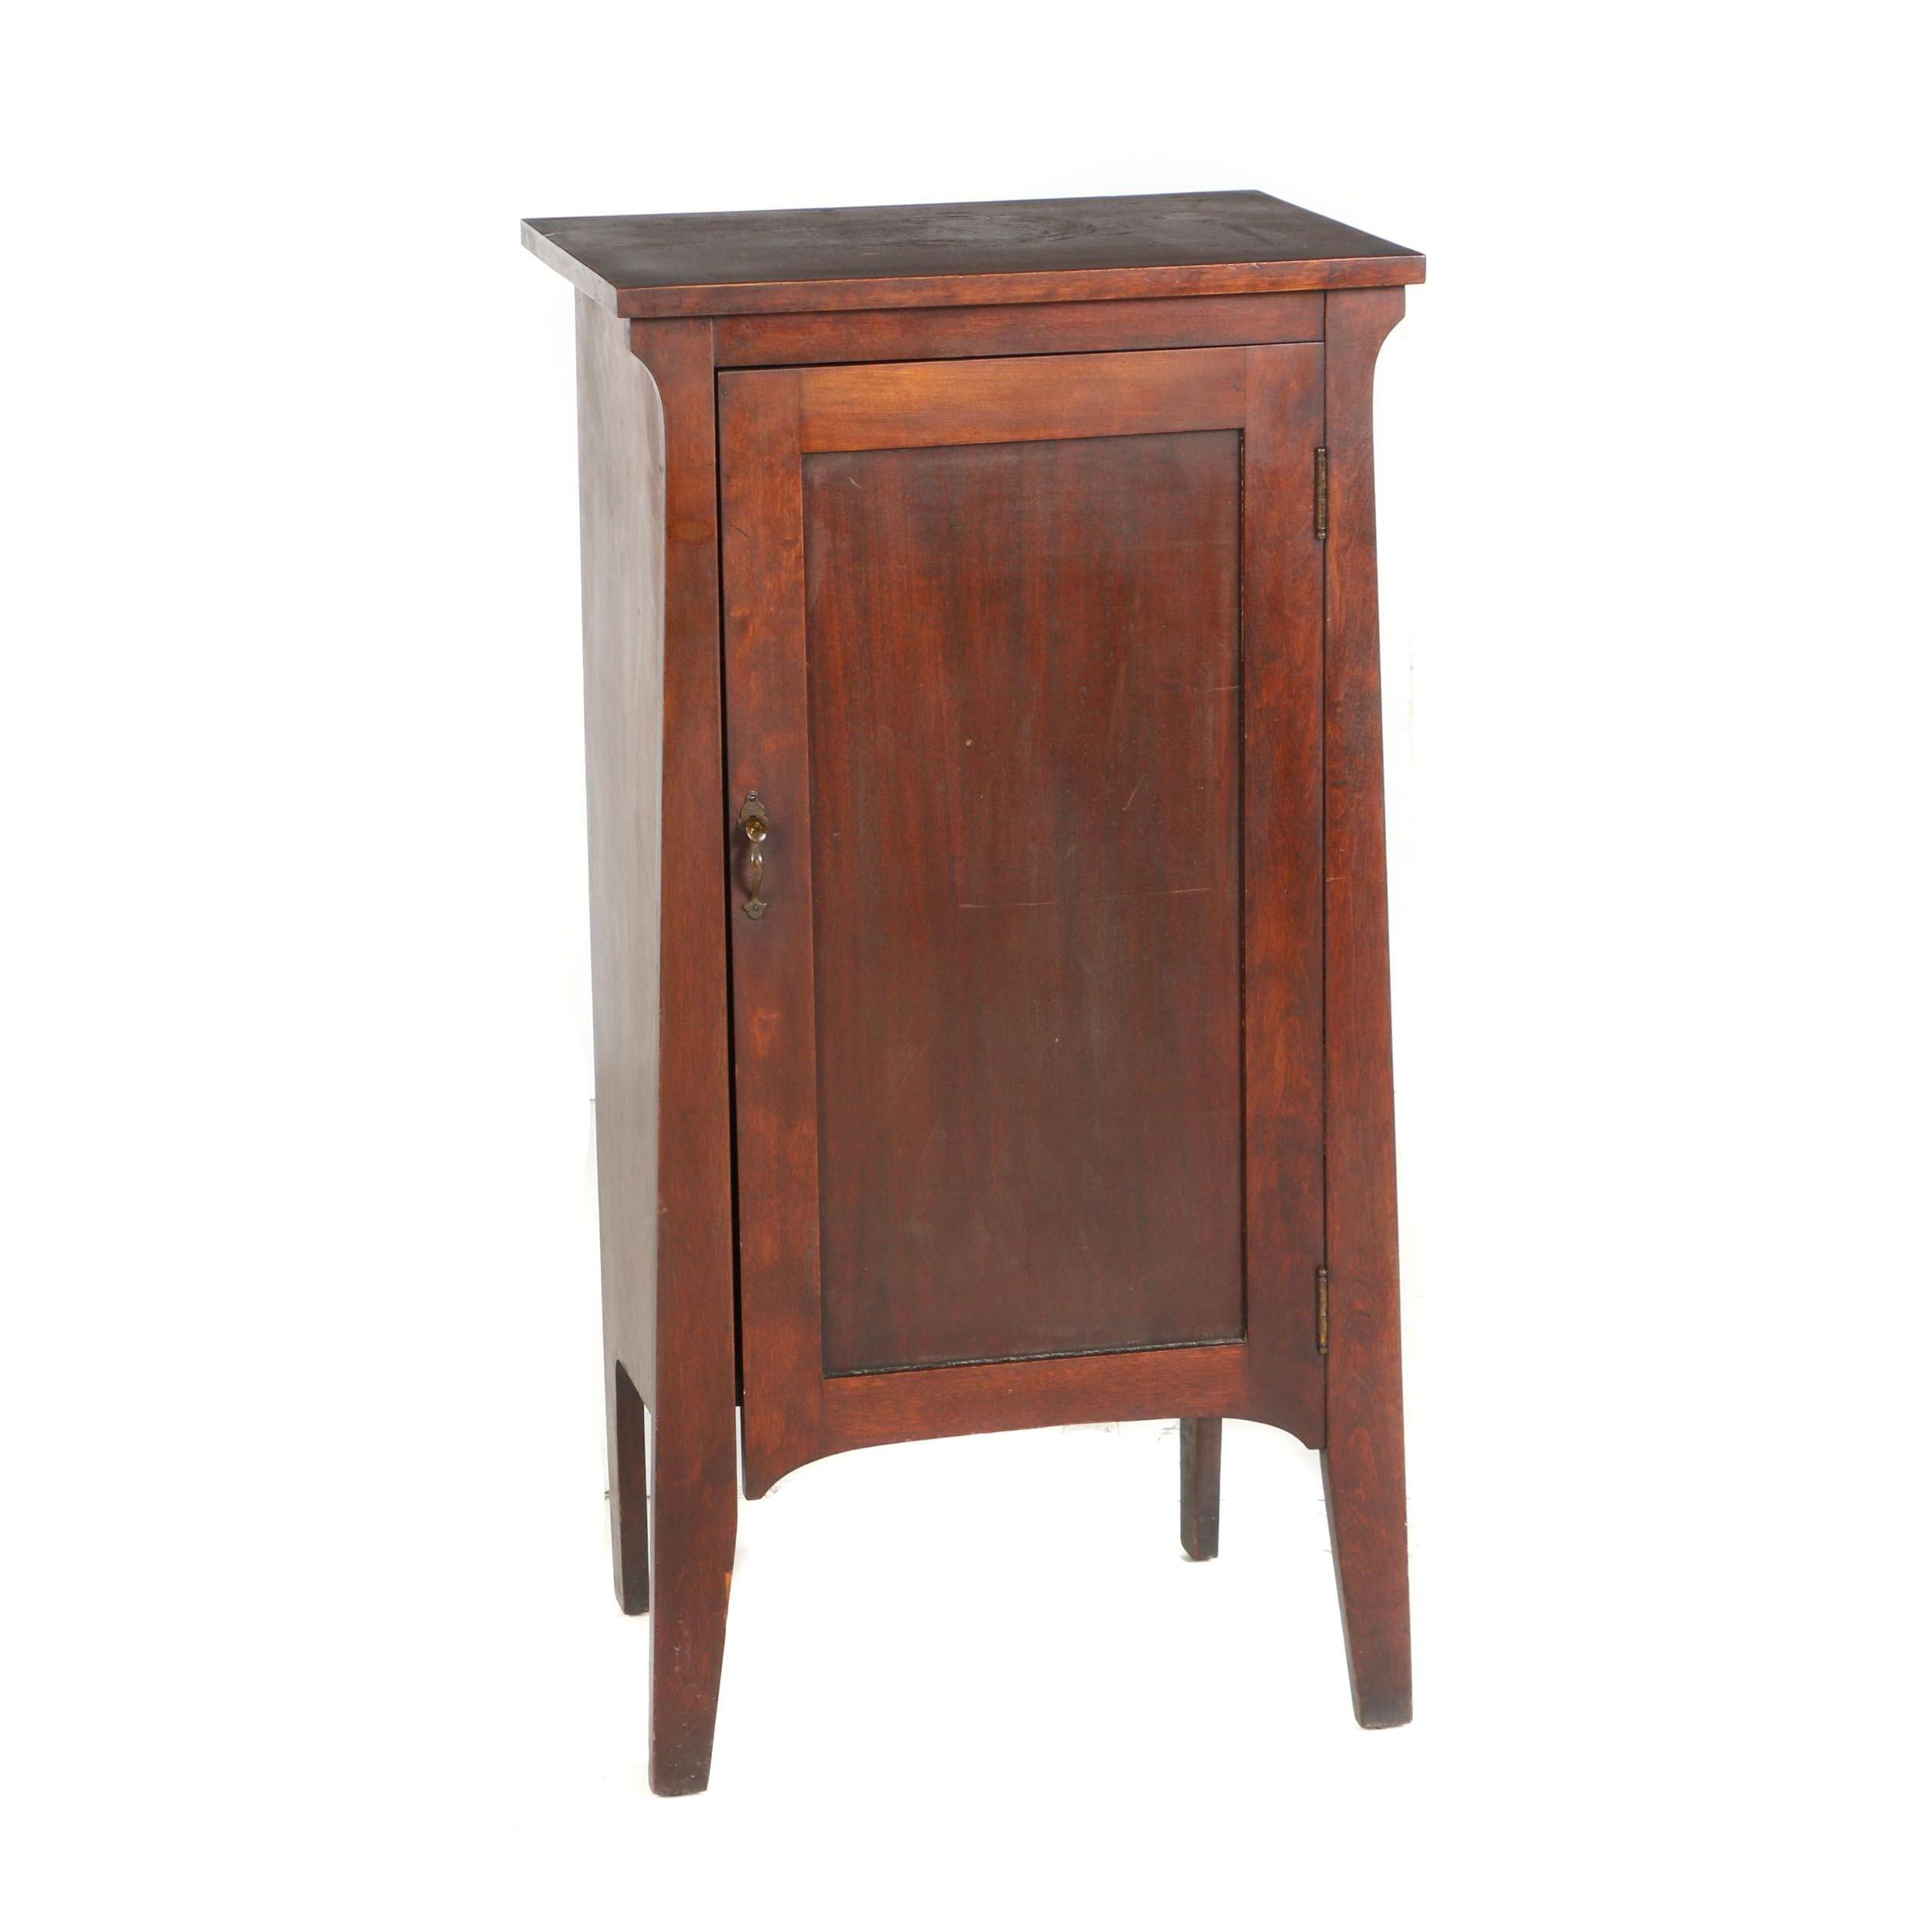 Arts and Crafts Mahogany-Stained Record Cabinet, Early 20th Century